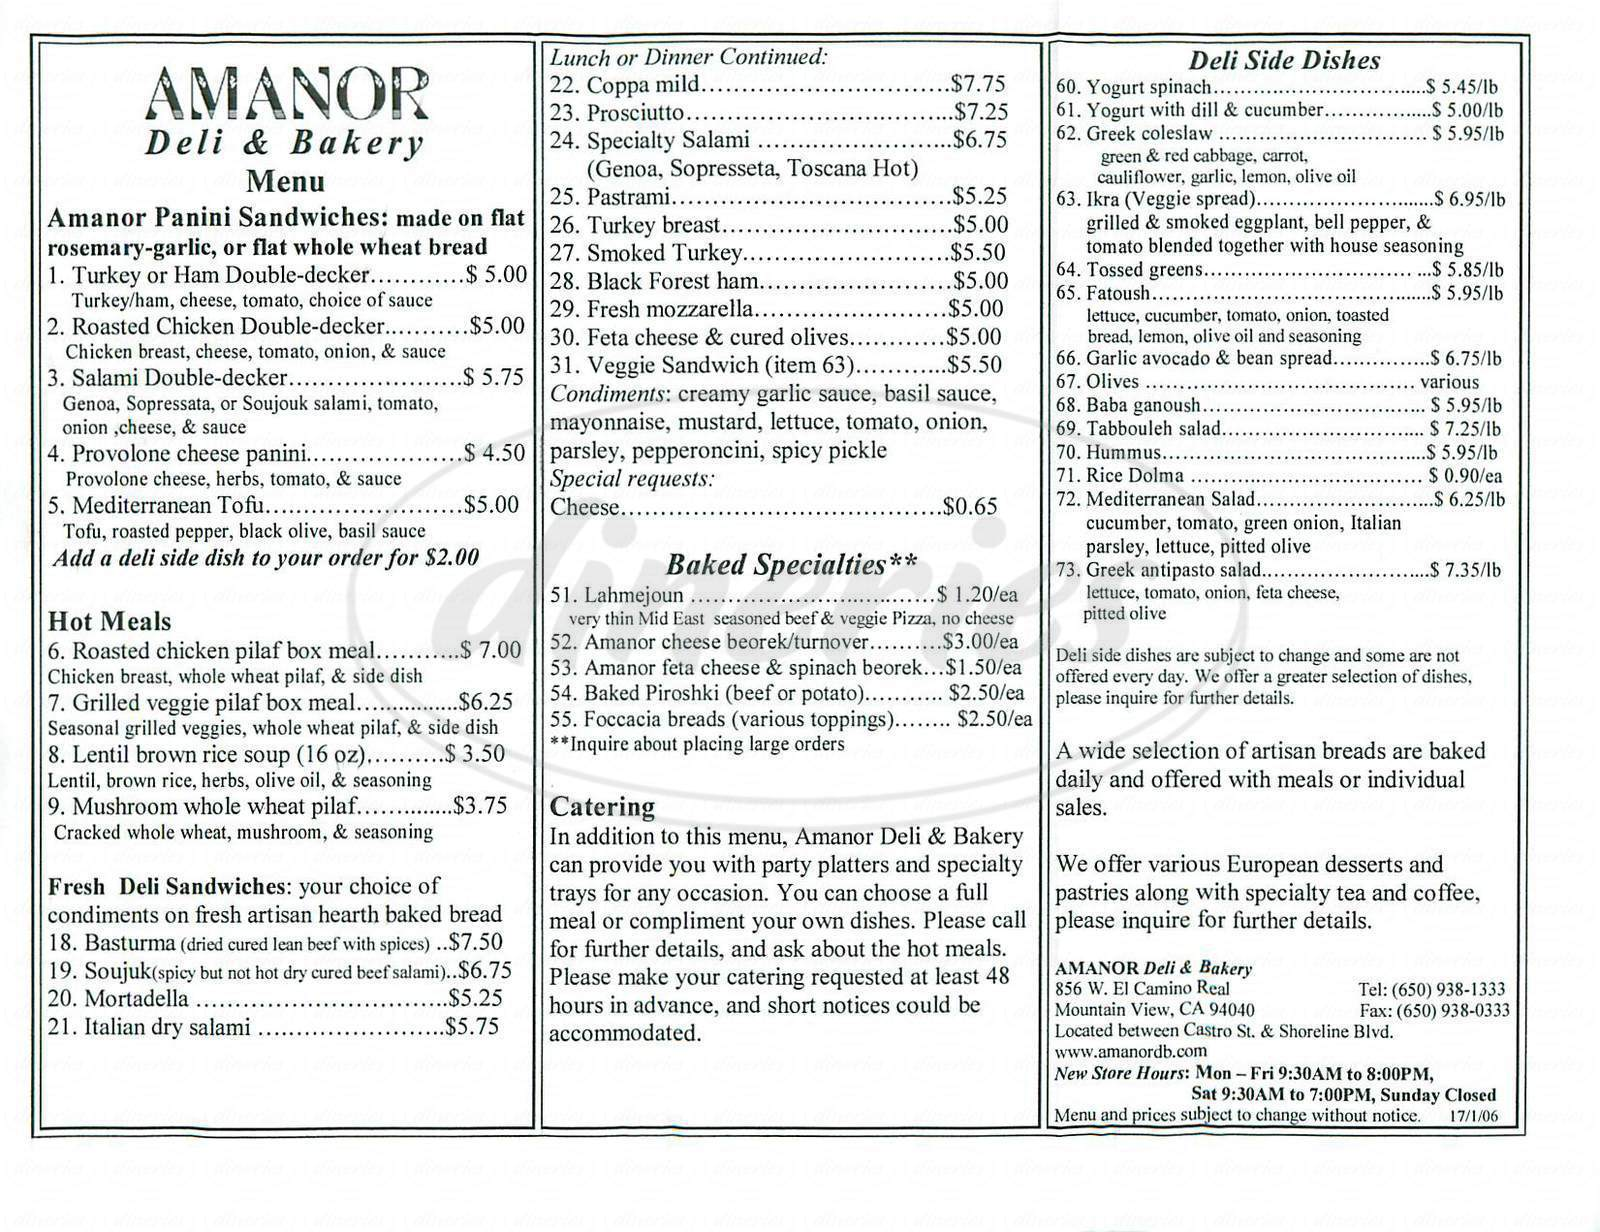 menu for Amanor Deli & Bakery